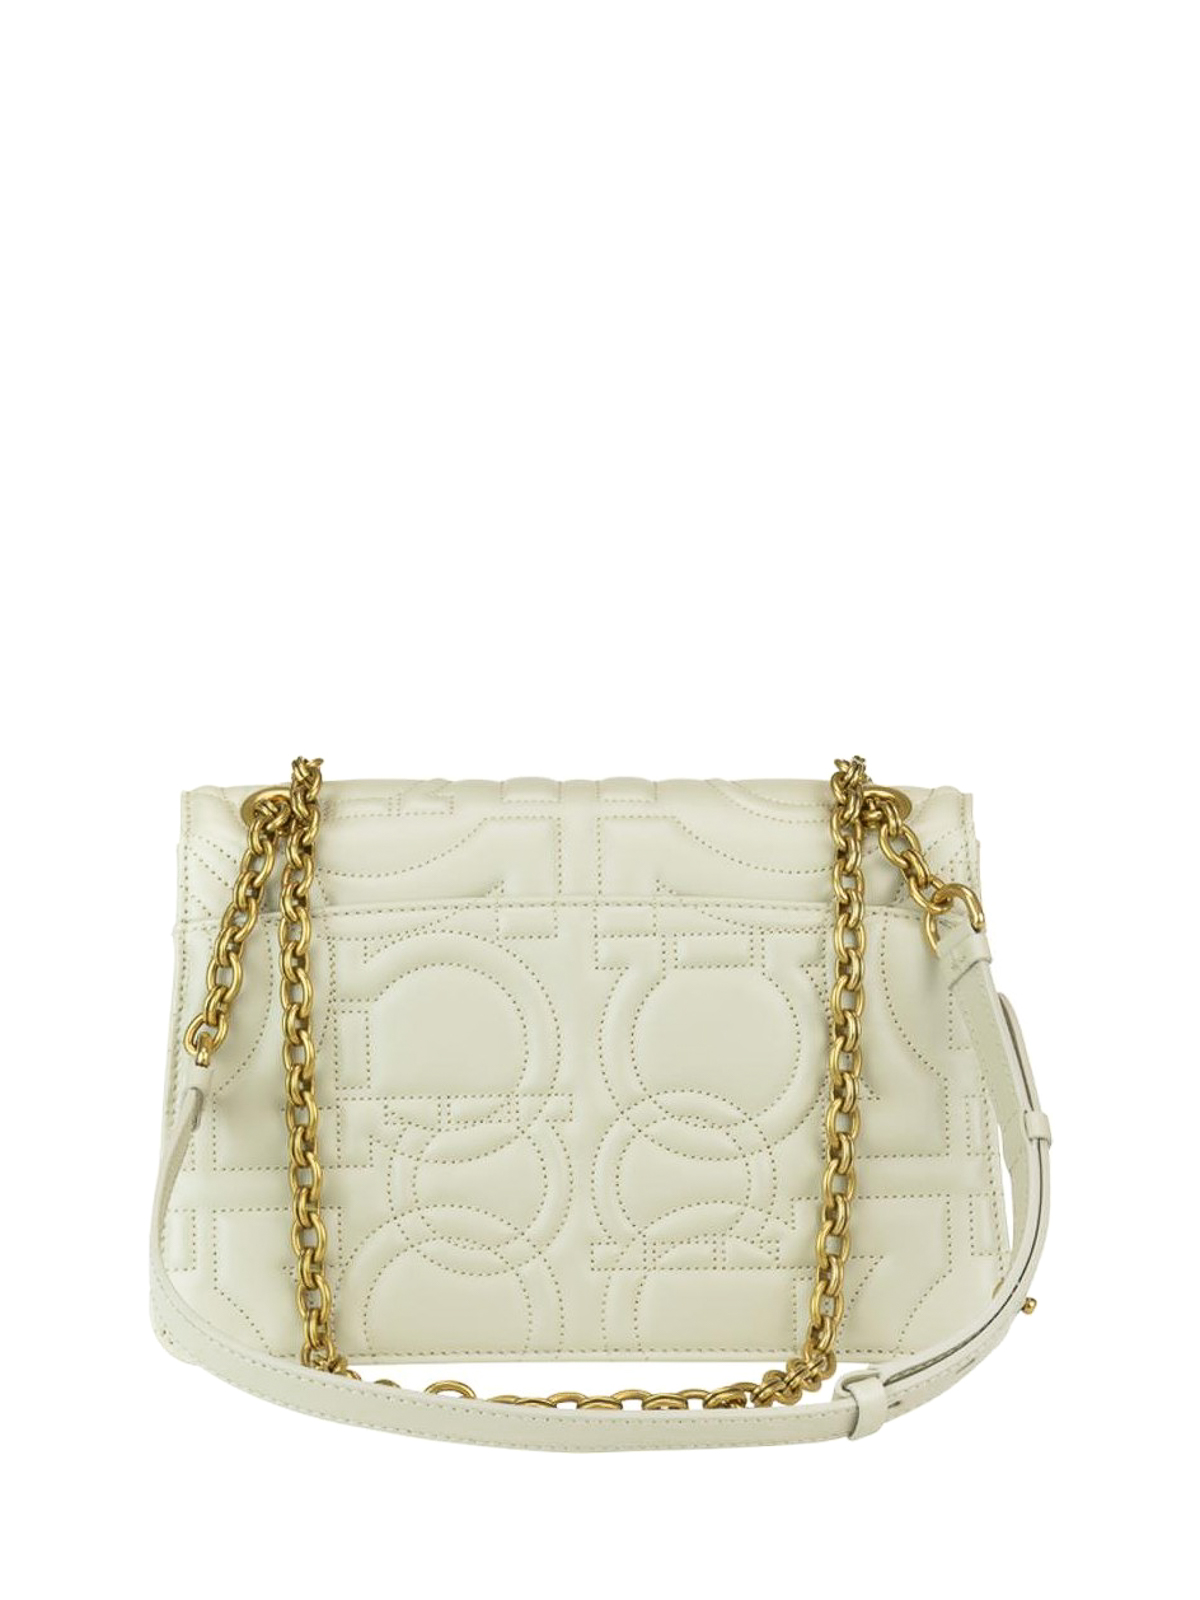 iKRIX SALVATORE FERRAGAMO  shoulder bags - Gancini white quilted leather  shoulder bag e2dd17ae1f